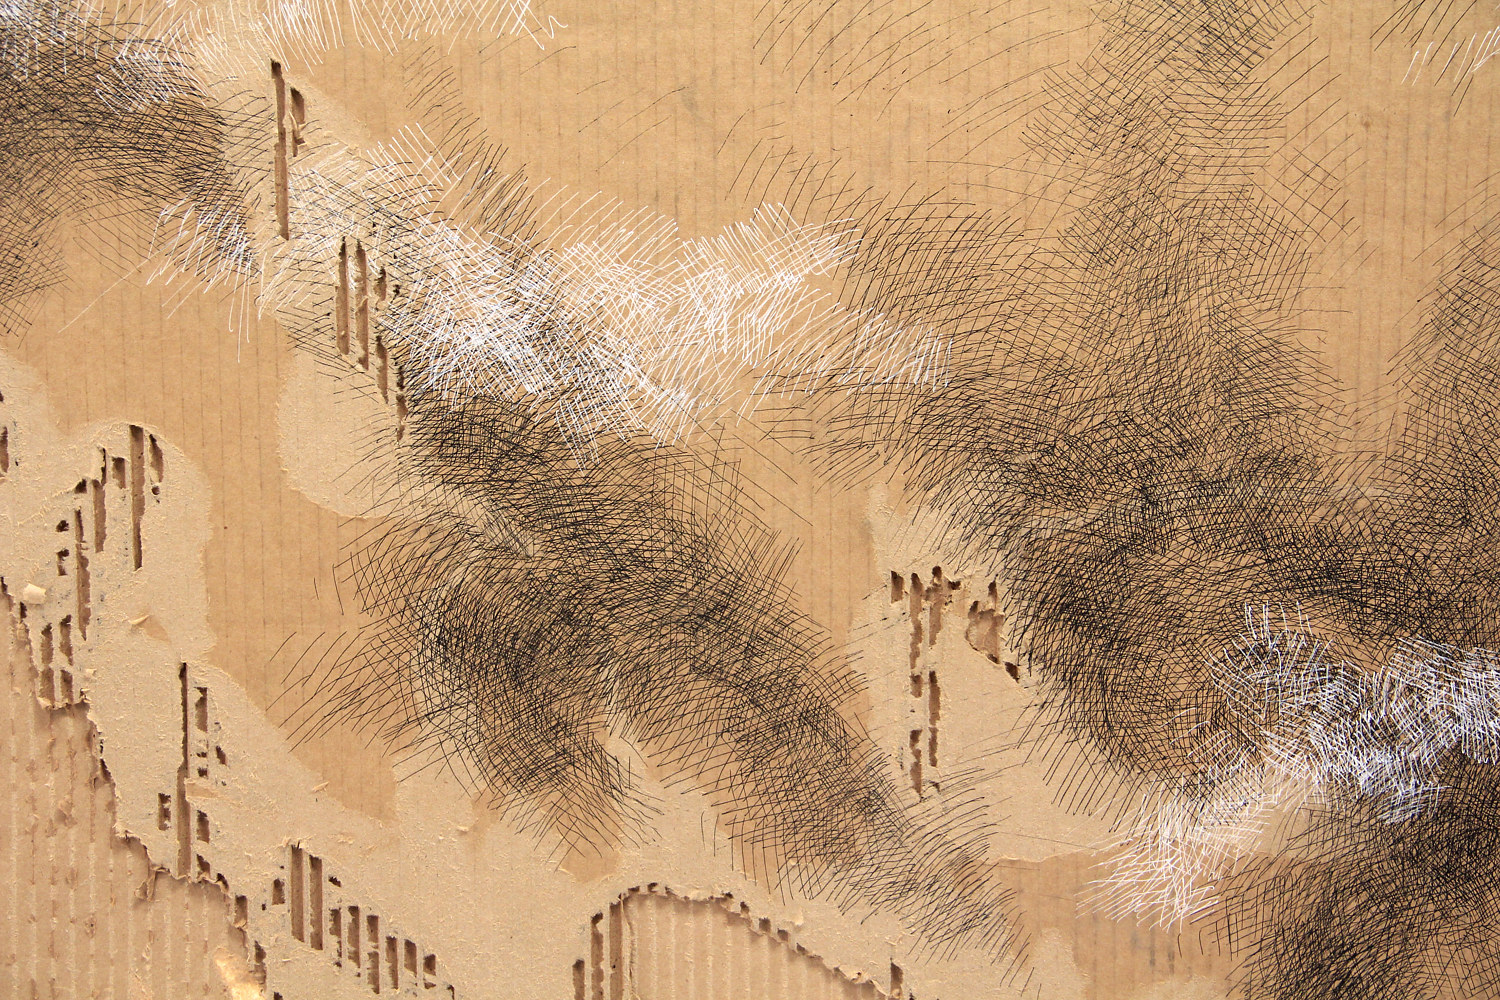 Drawing Man On The Edge Ascending Like Smog - detail view II by Sidi Chen